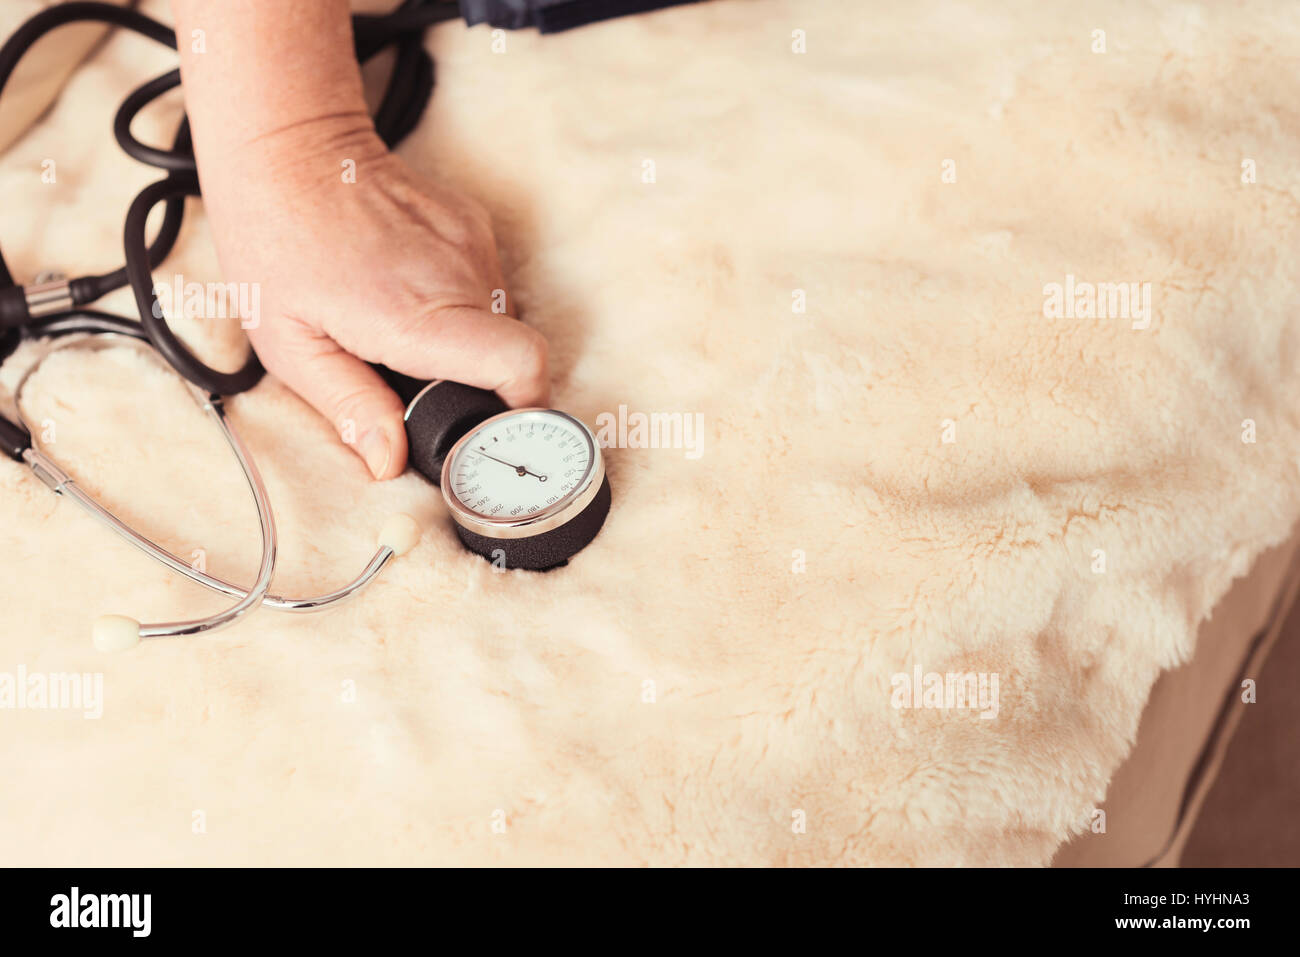 Aged woman holding tonometer at home - Stock Image